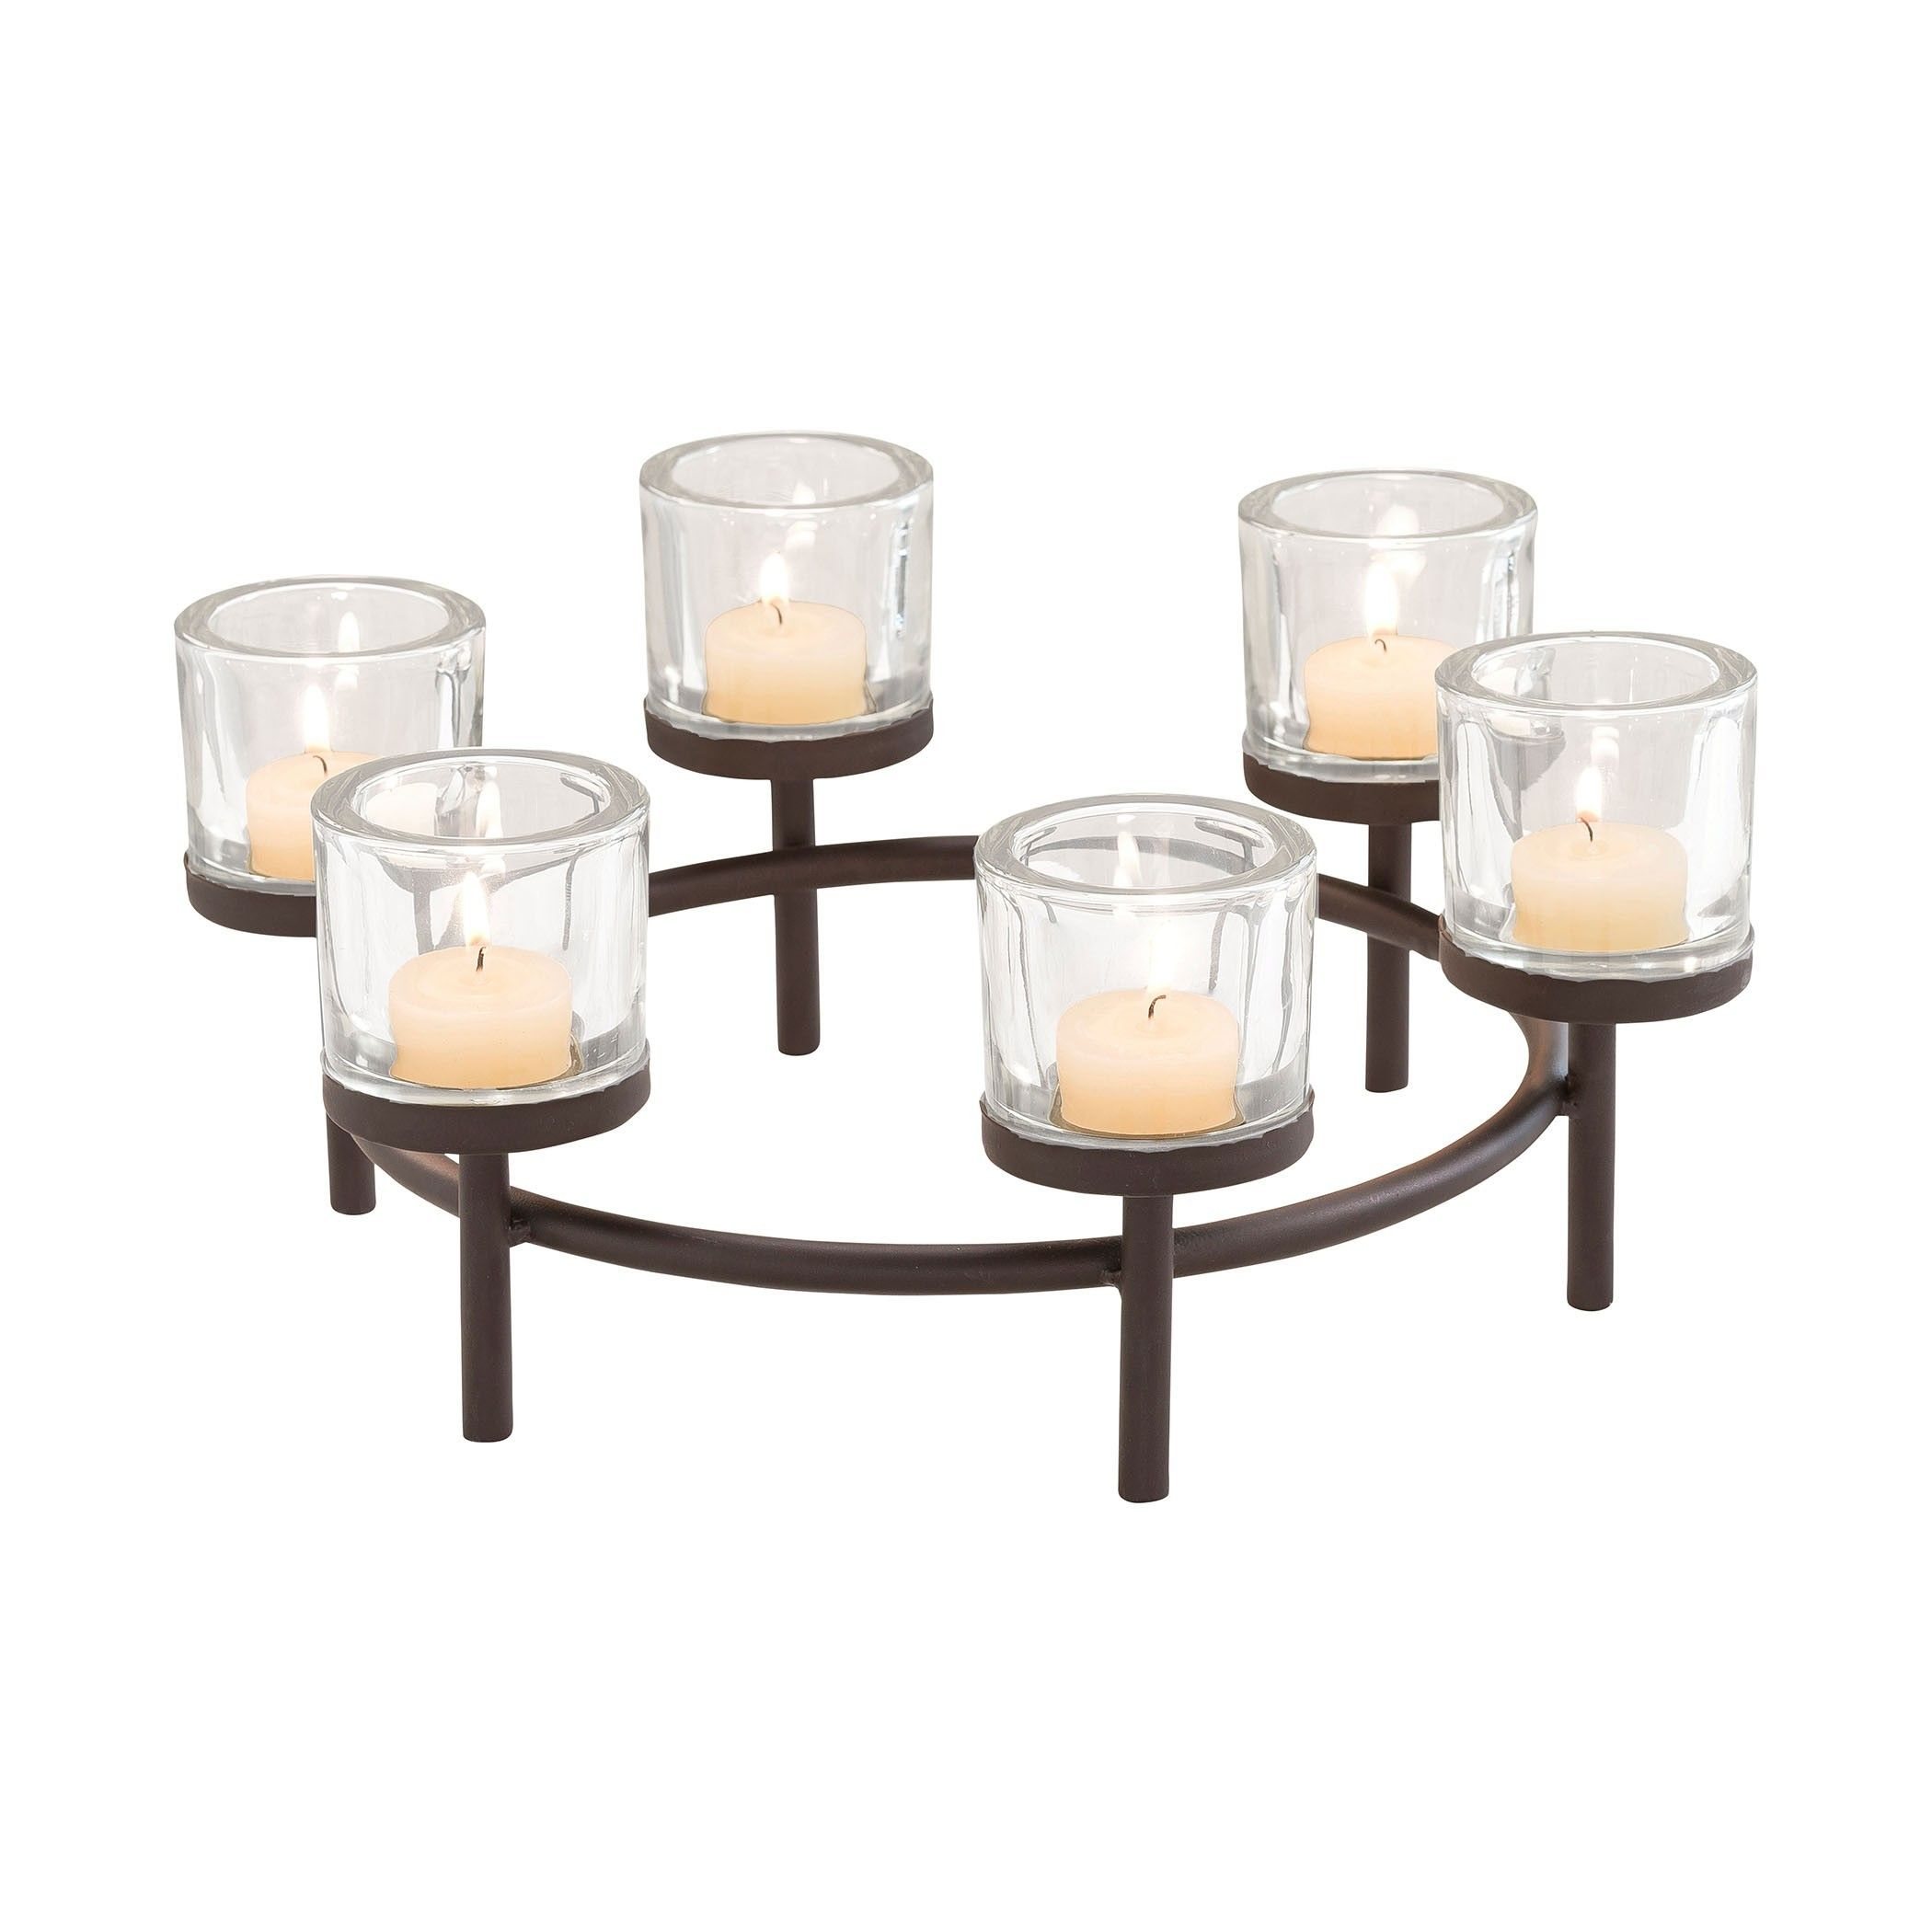 Pomeroy Sumi Centerpiece Candle Holder 670275